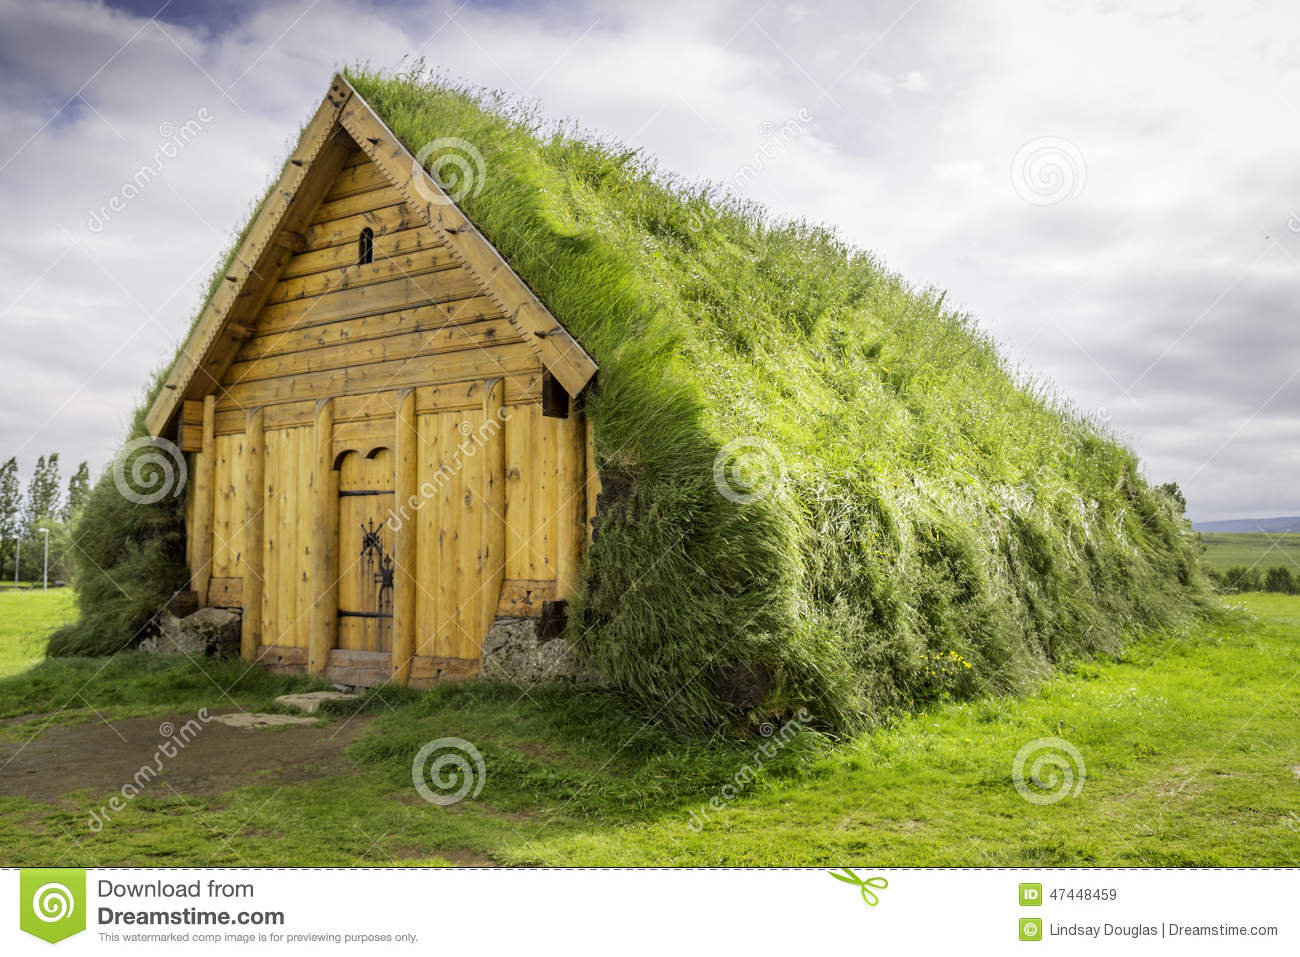 replica of a house Vikings would have lived in in Iceland.